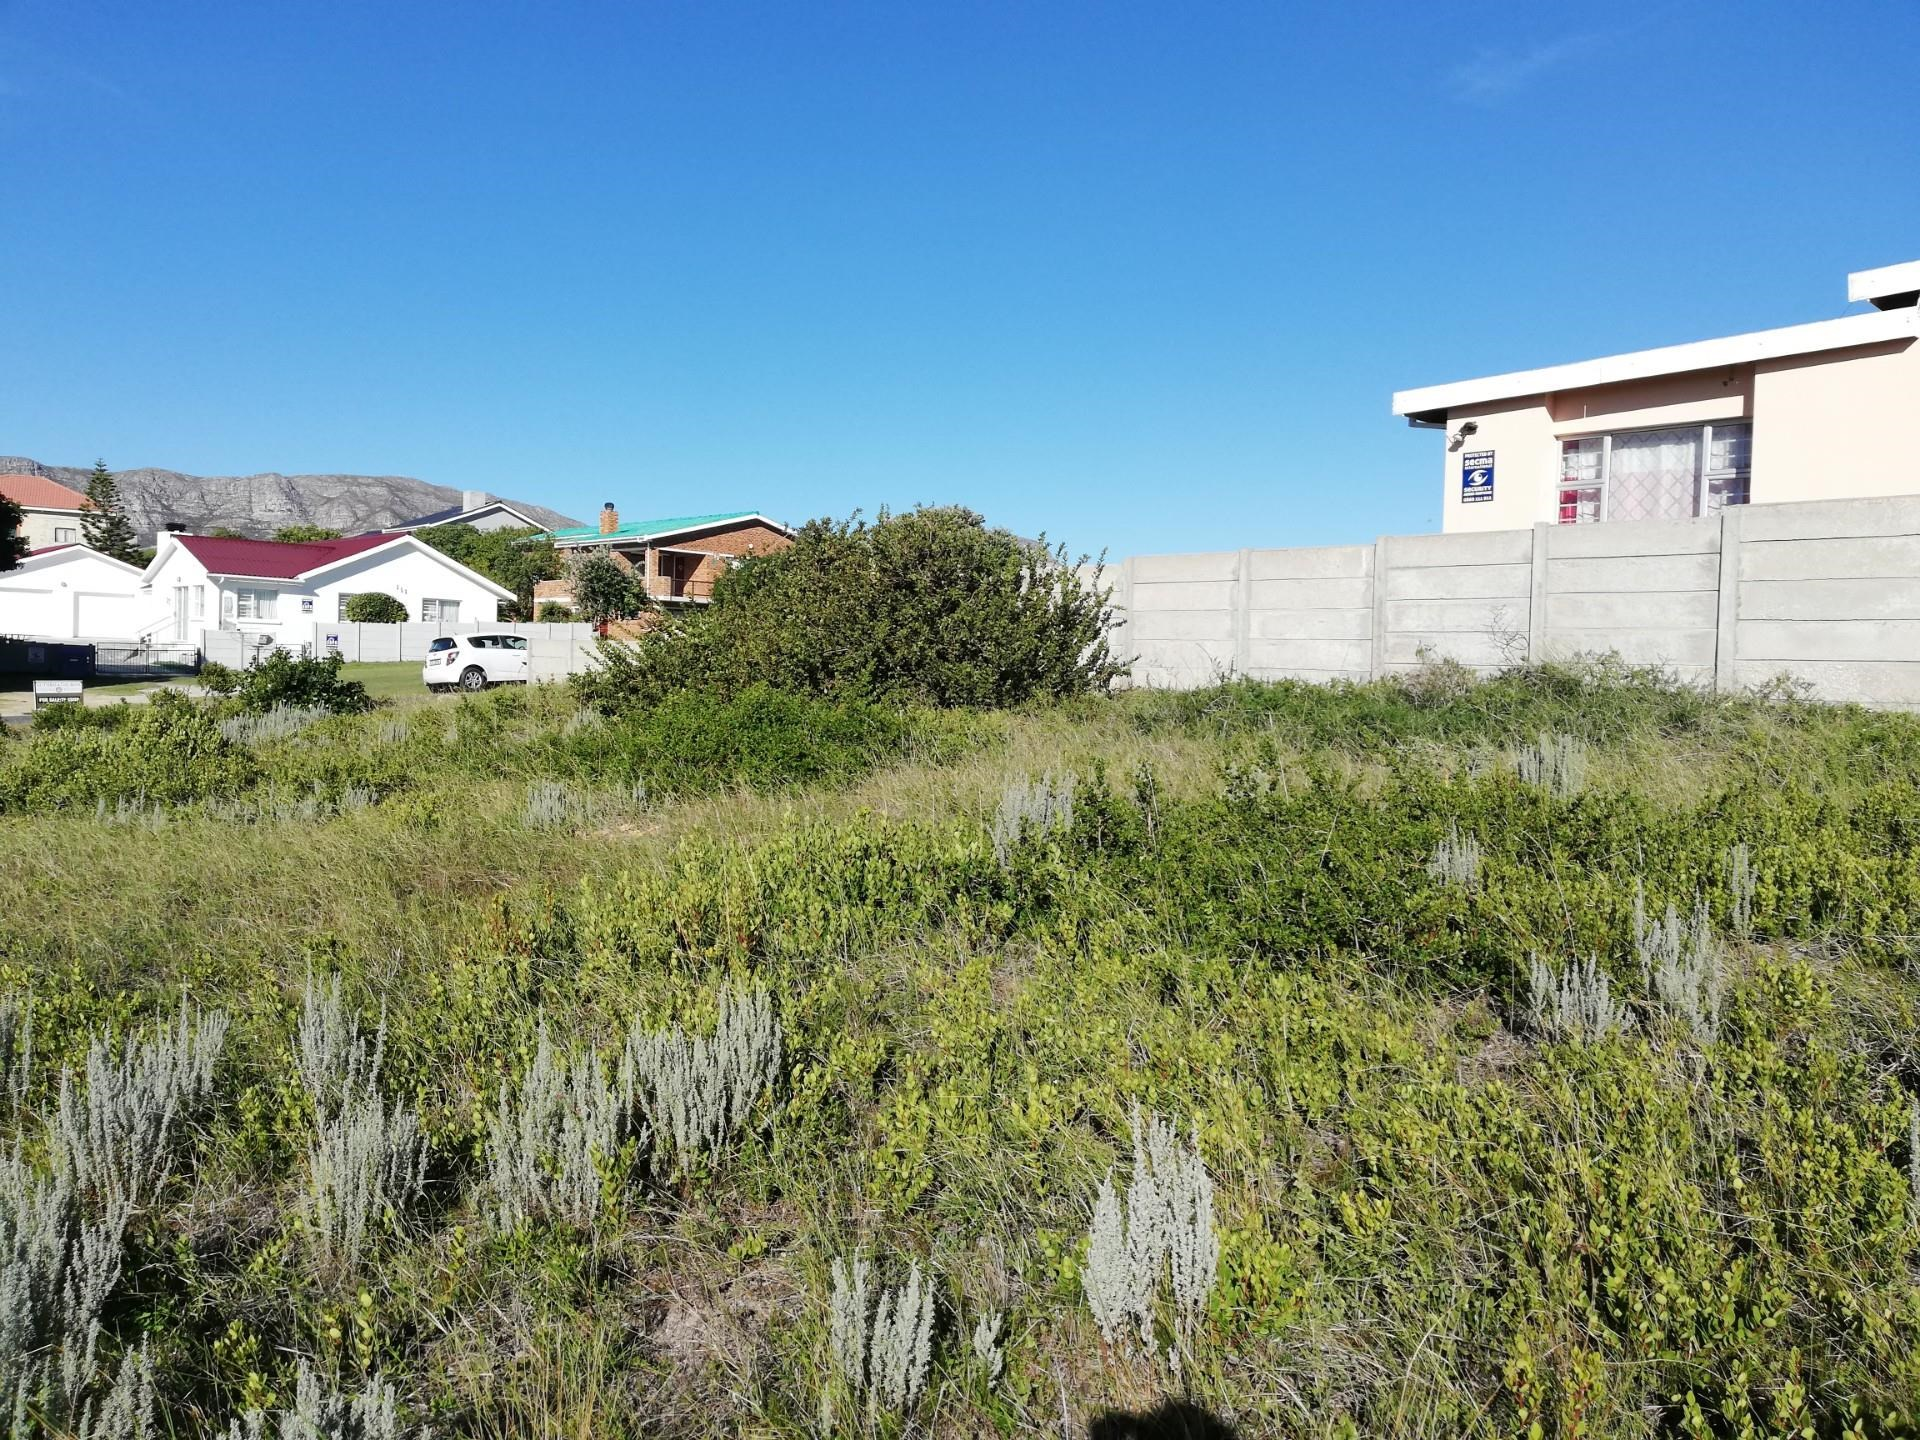 Vacant Land for Sale in De Kelders